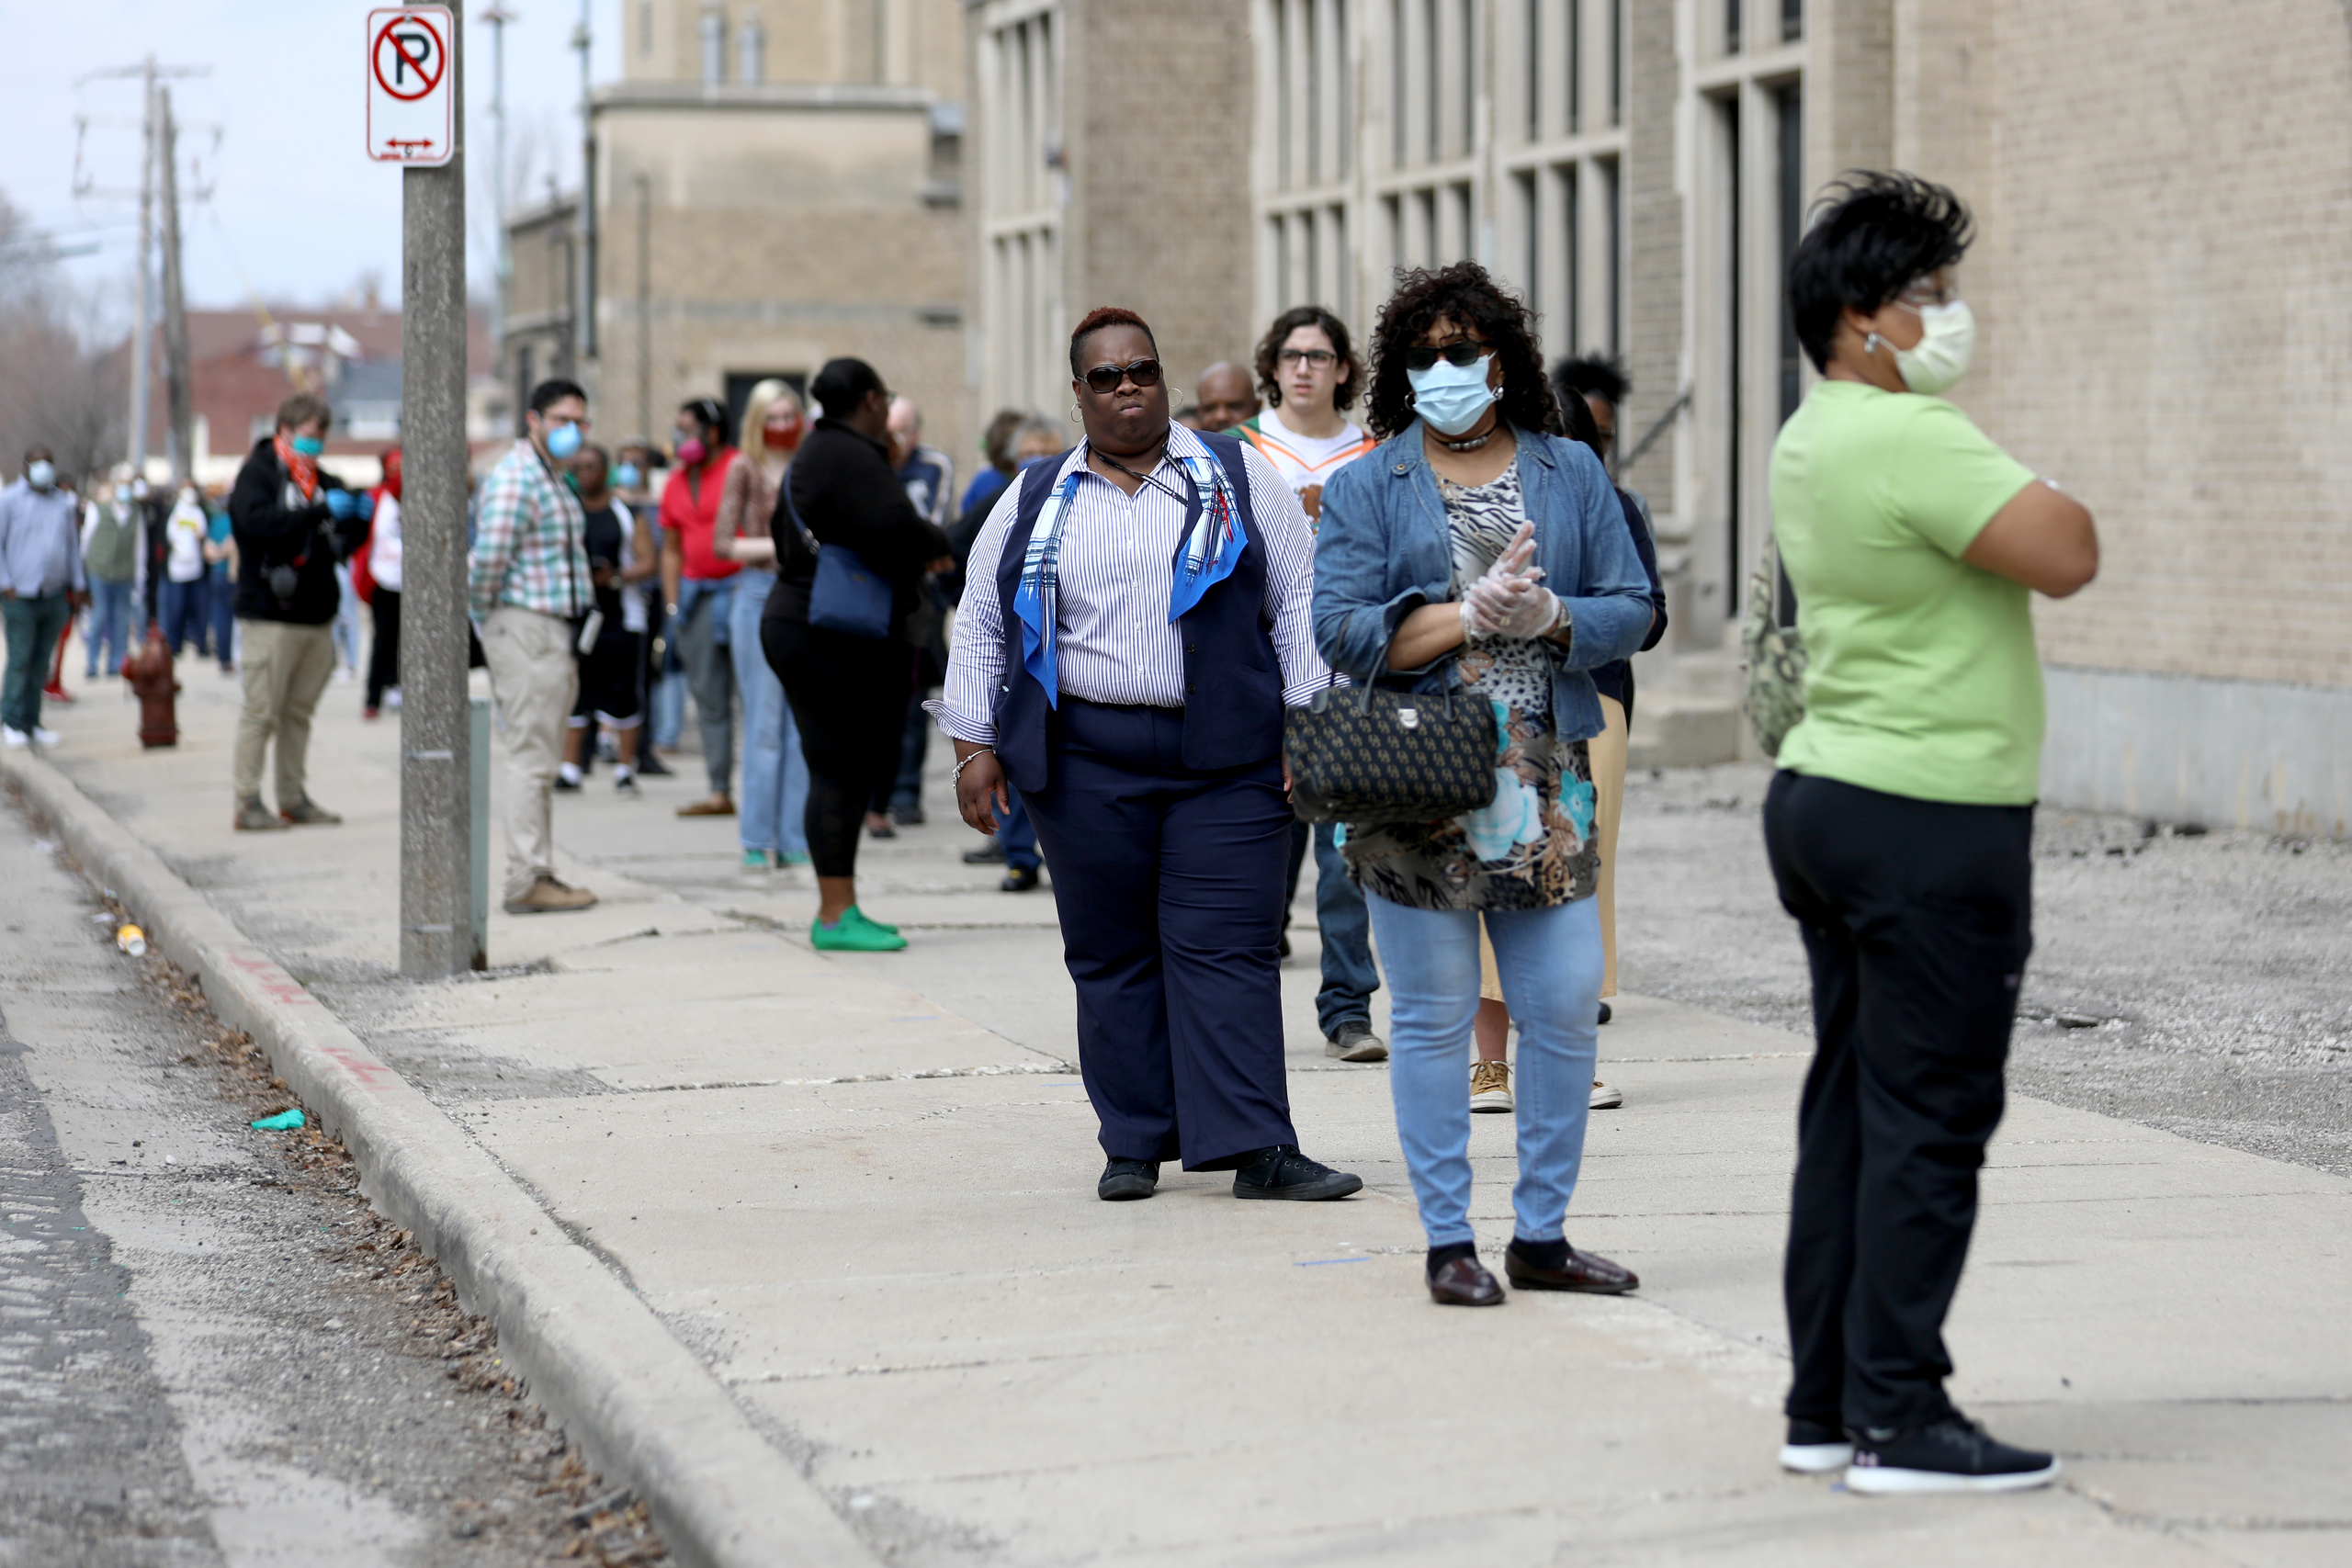 """A line of voters wraps around the block outside Washington High School in Milwaukee during the primary election on April 7, 2020. A top civil rights advocate called Wisconsin's election a """"travesty that put voters in the crosshairs of having to choose between their safety and their vote."""" Various lawsuits are seeking a relaxation of Wisconsin's voting laws ahead of the Nov. 3 election due to the pandemic."""